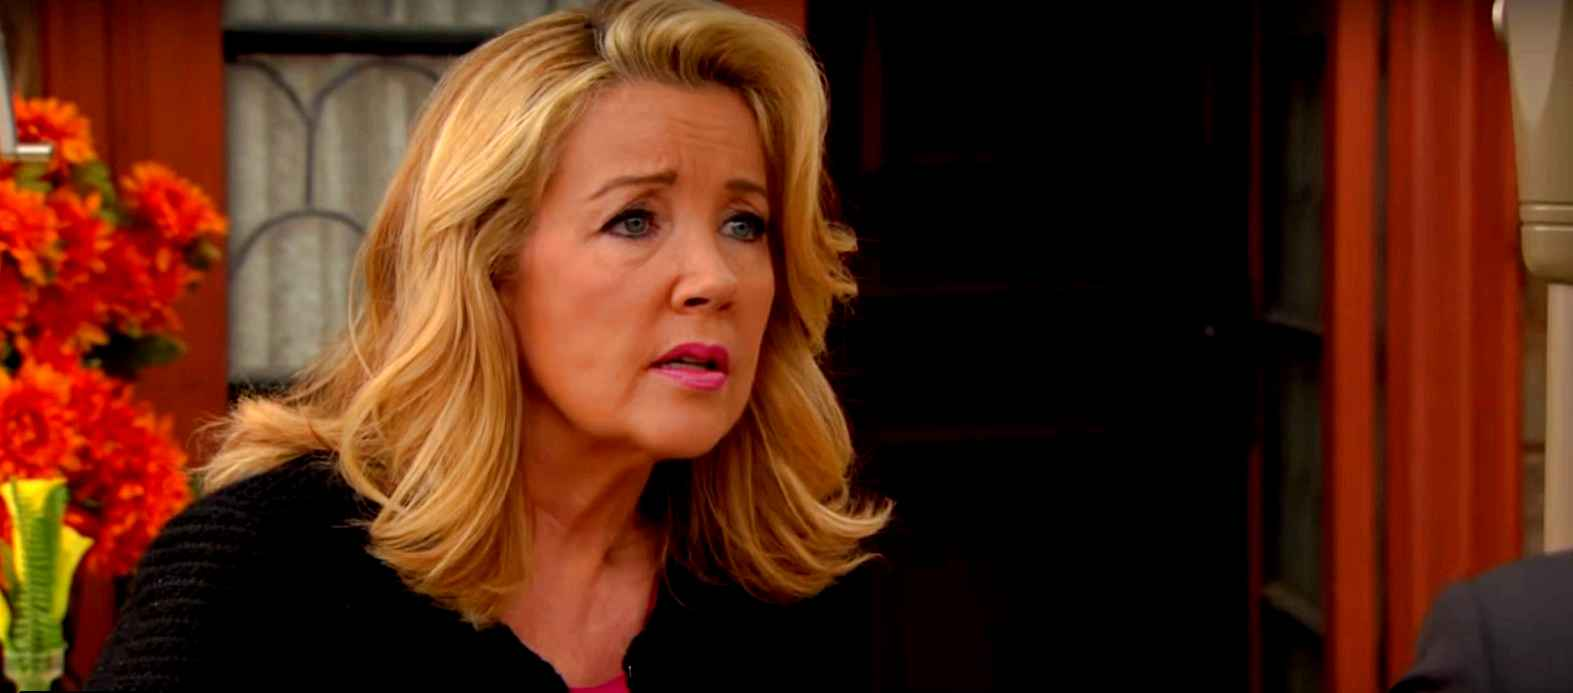 Melody Thomas Scott of The Young and the Restless (Y&R)